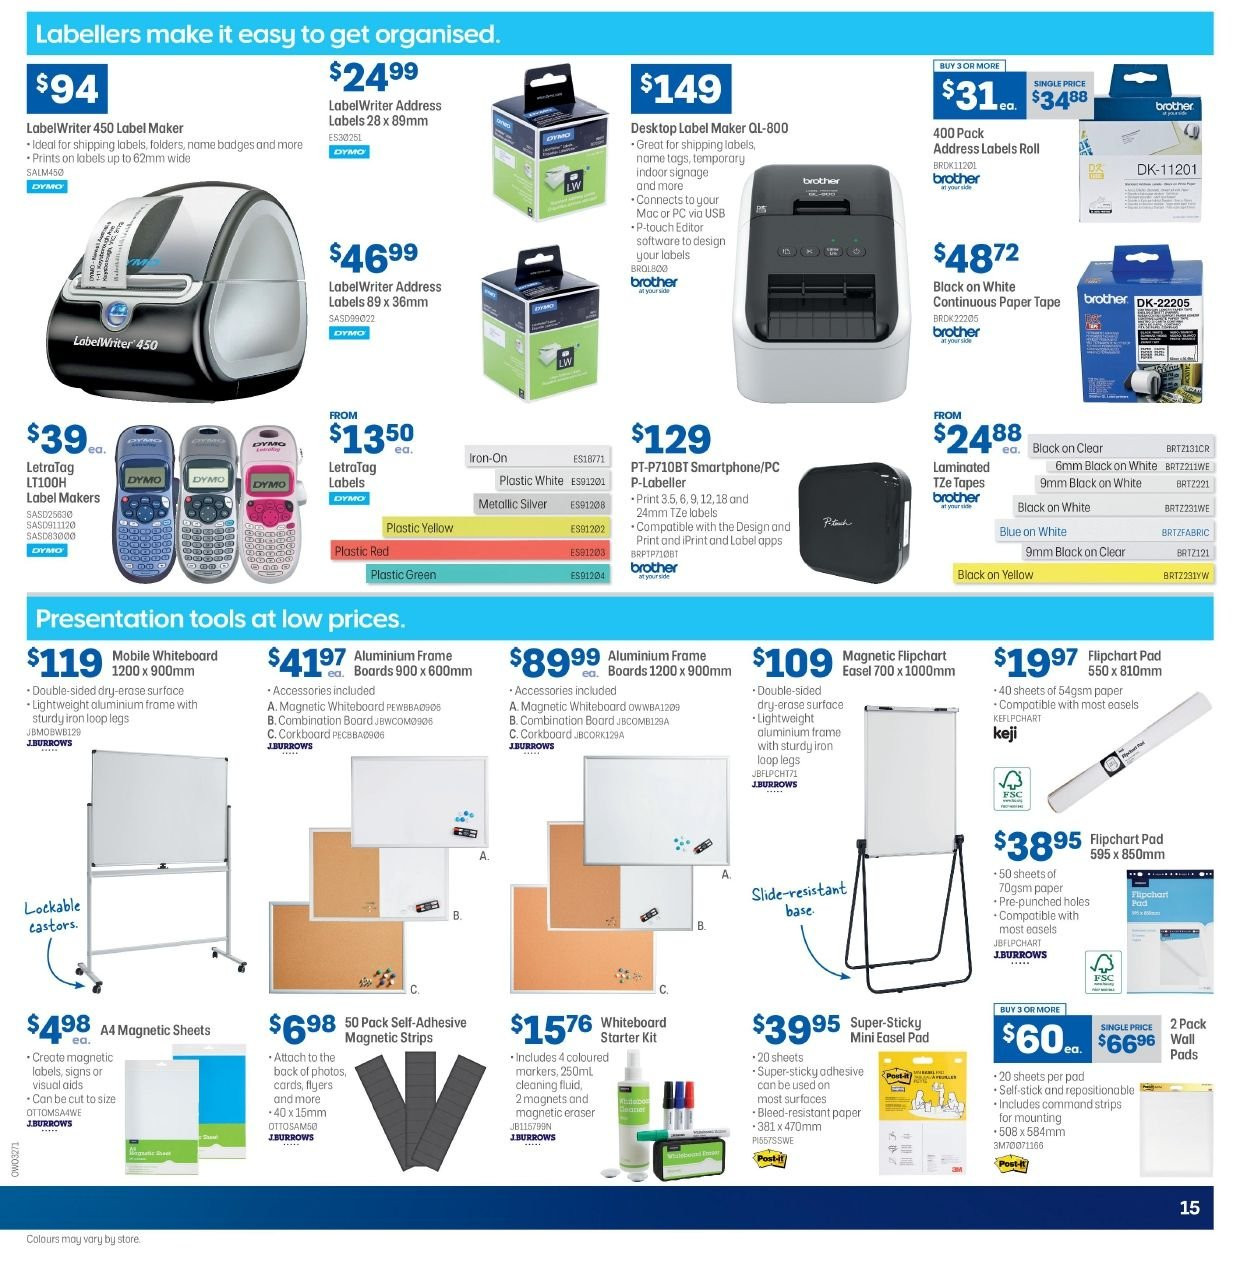 Officeworks catalogue and weekly specials 28 2 2019 - 20 3 2019 | Au